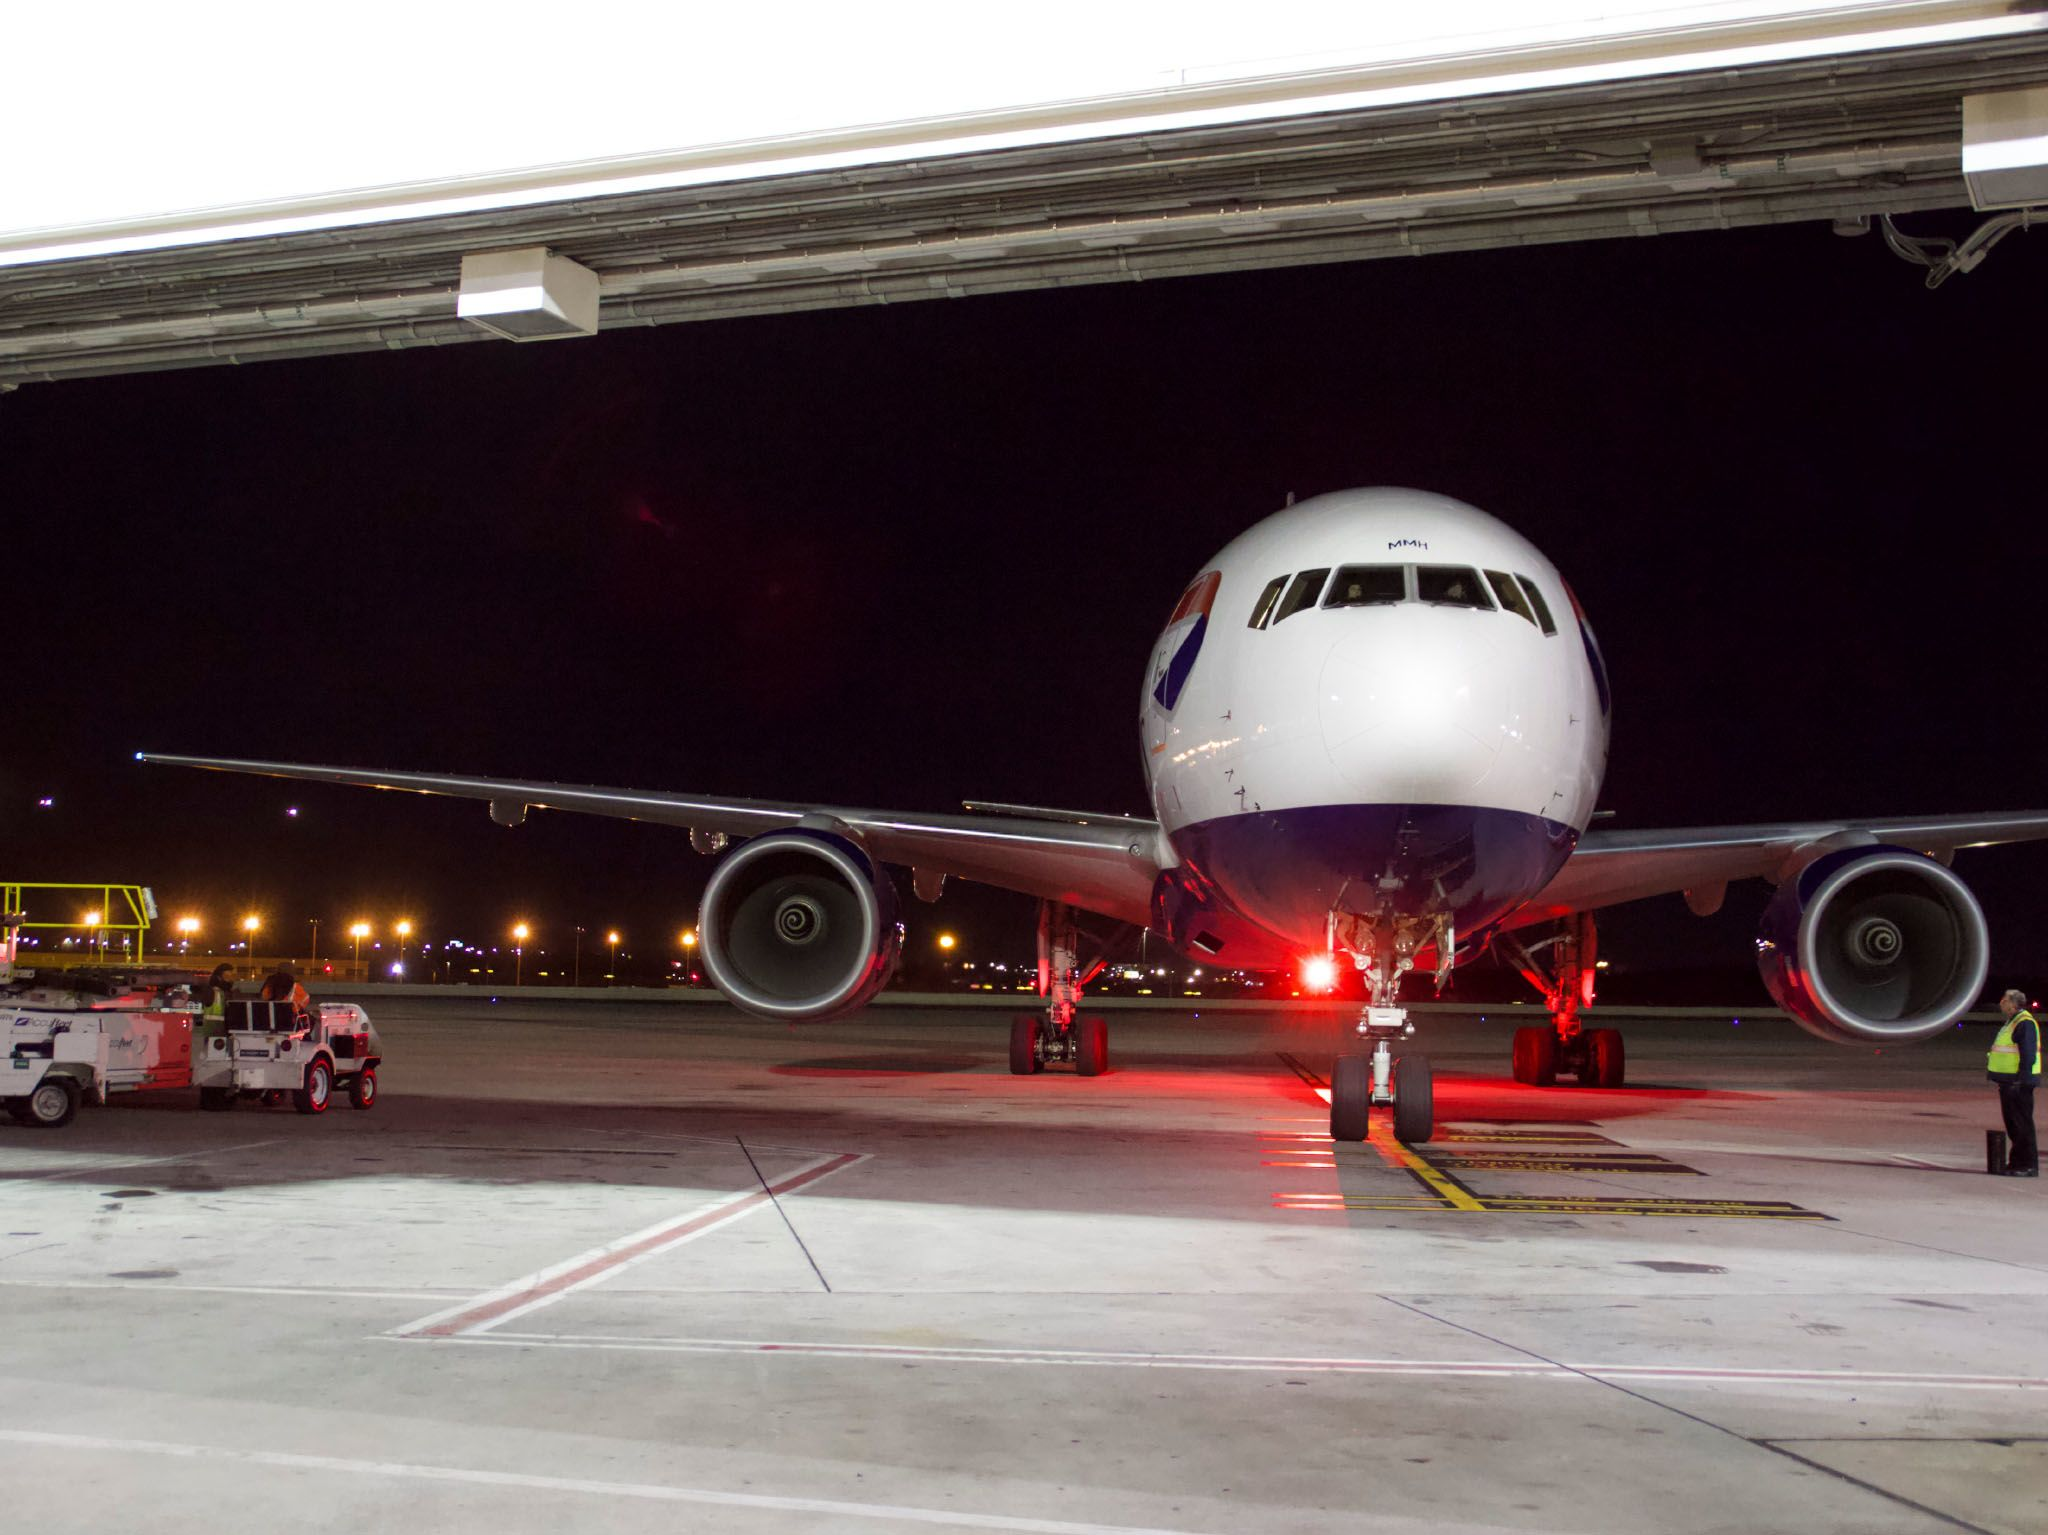 A plane arrives at International Cargo Facility. This image is from To Catch A Smuggler. [Photo of the day - March 2021]